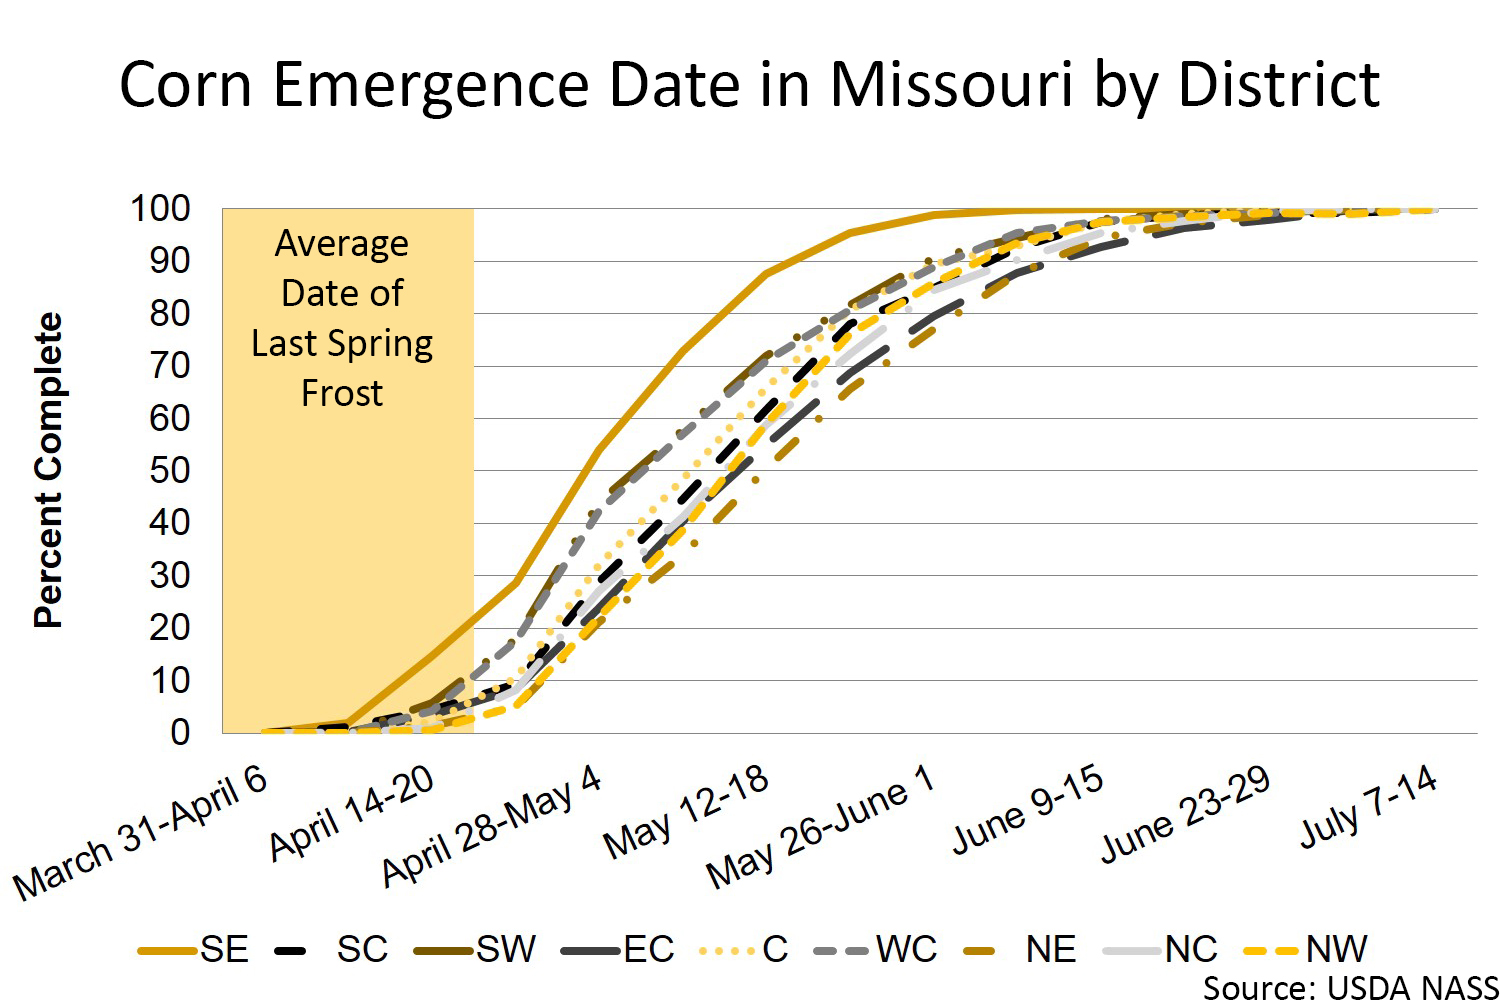 Missouri corn emergence by district chart